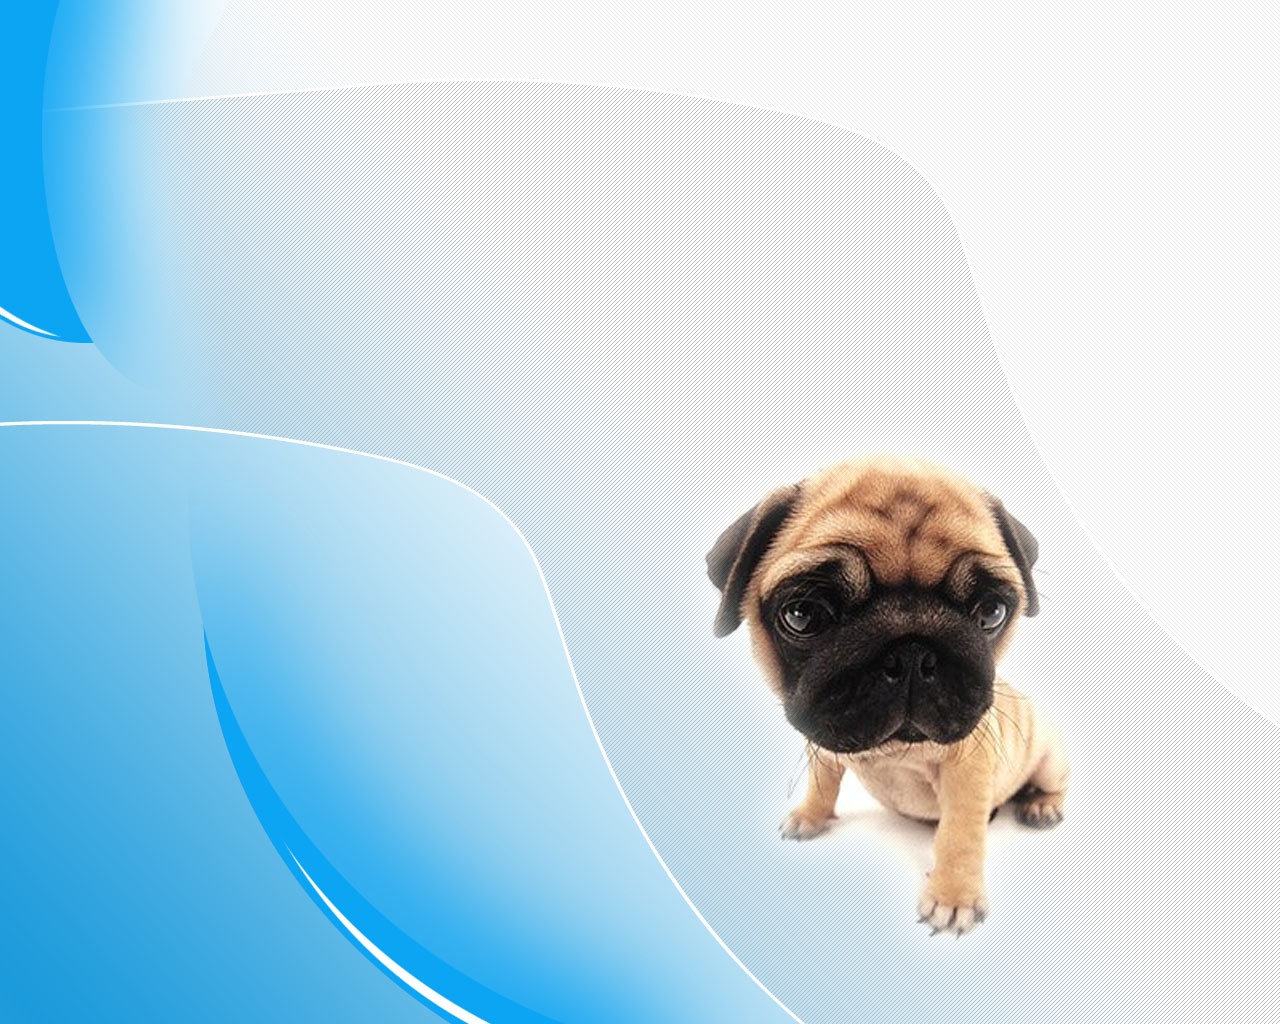 Pug Wallpaper Dogs Black Beautiful Pictures HD Wallpapers Pug 1280x1024